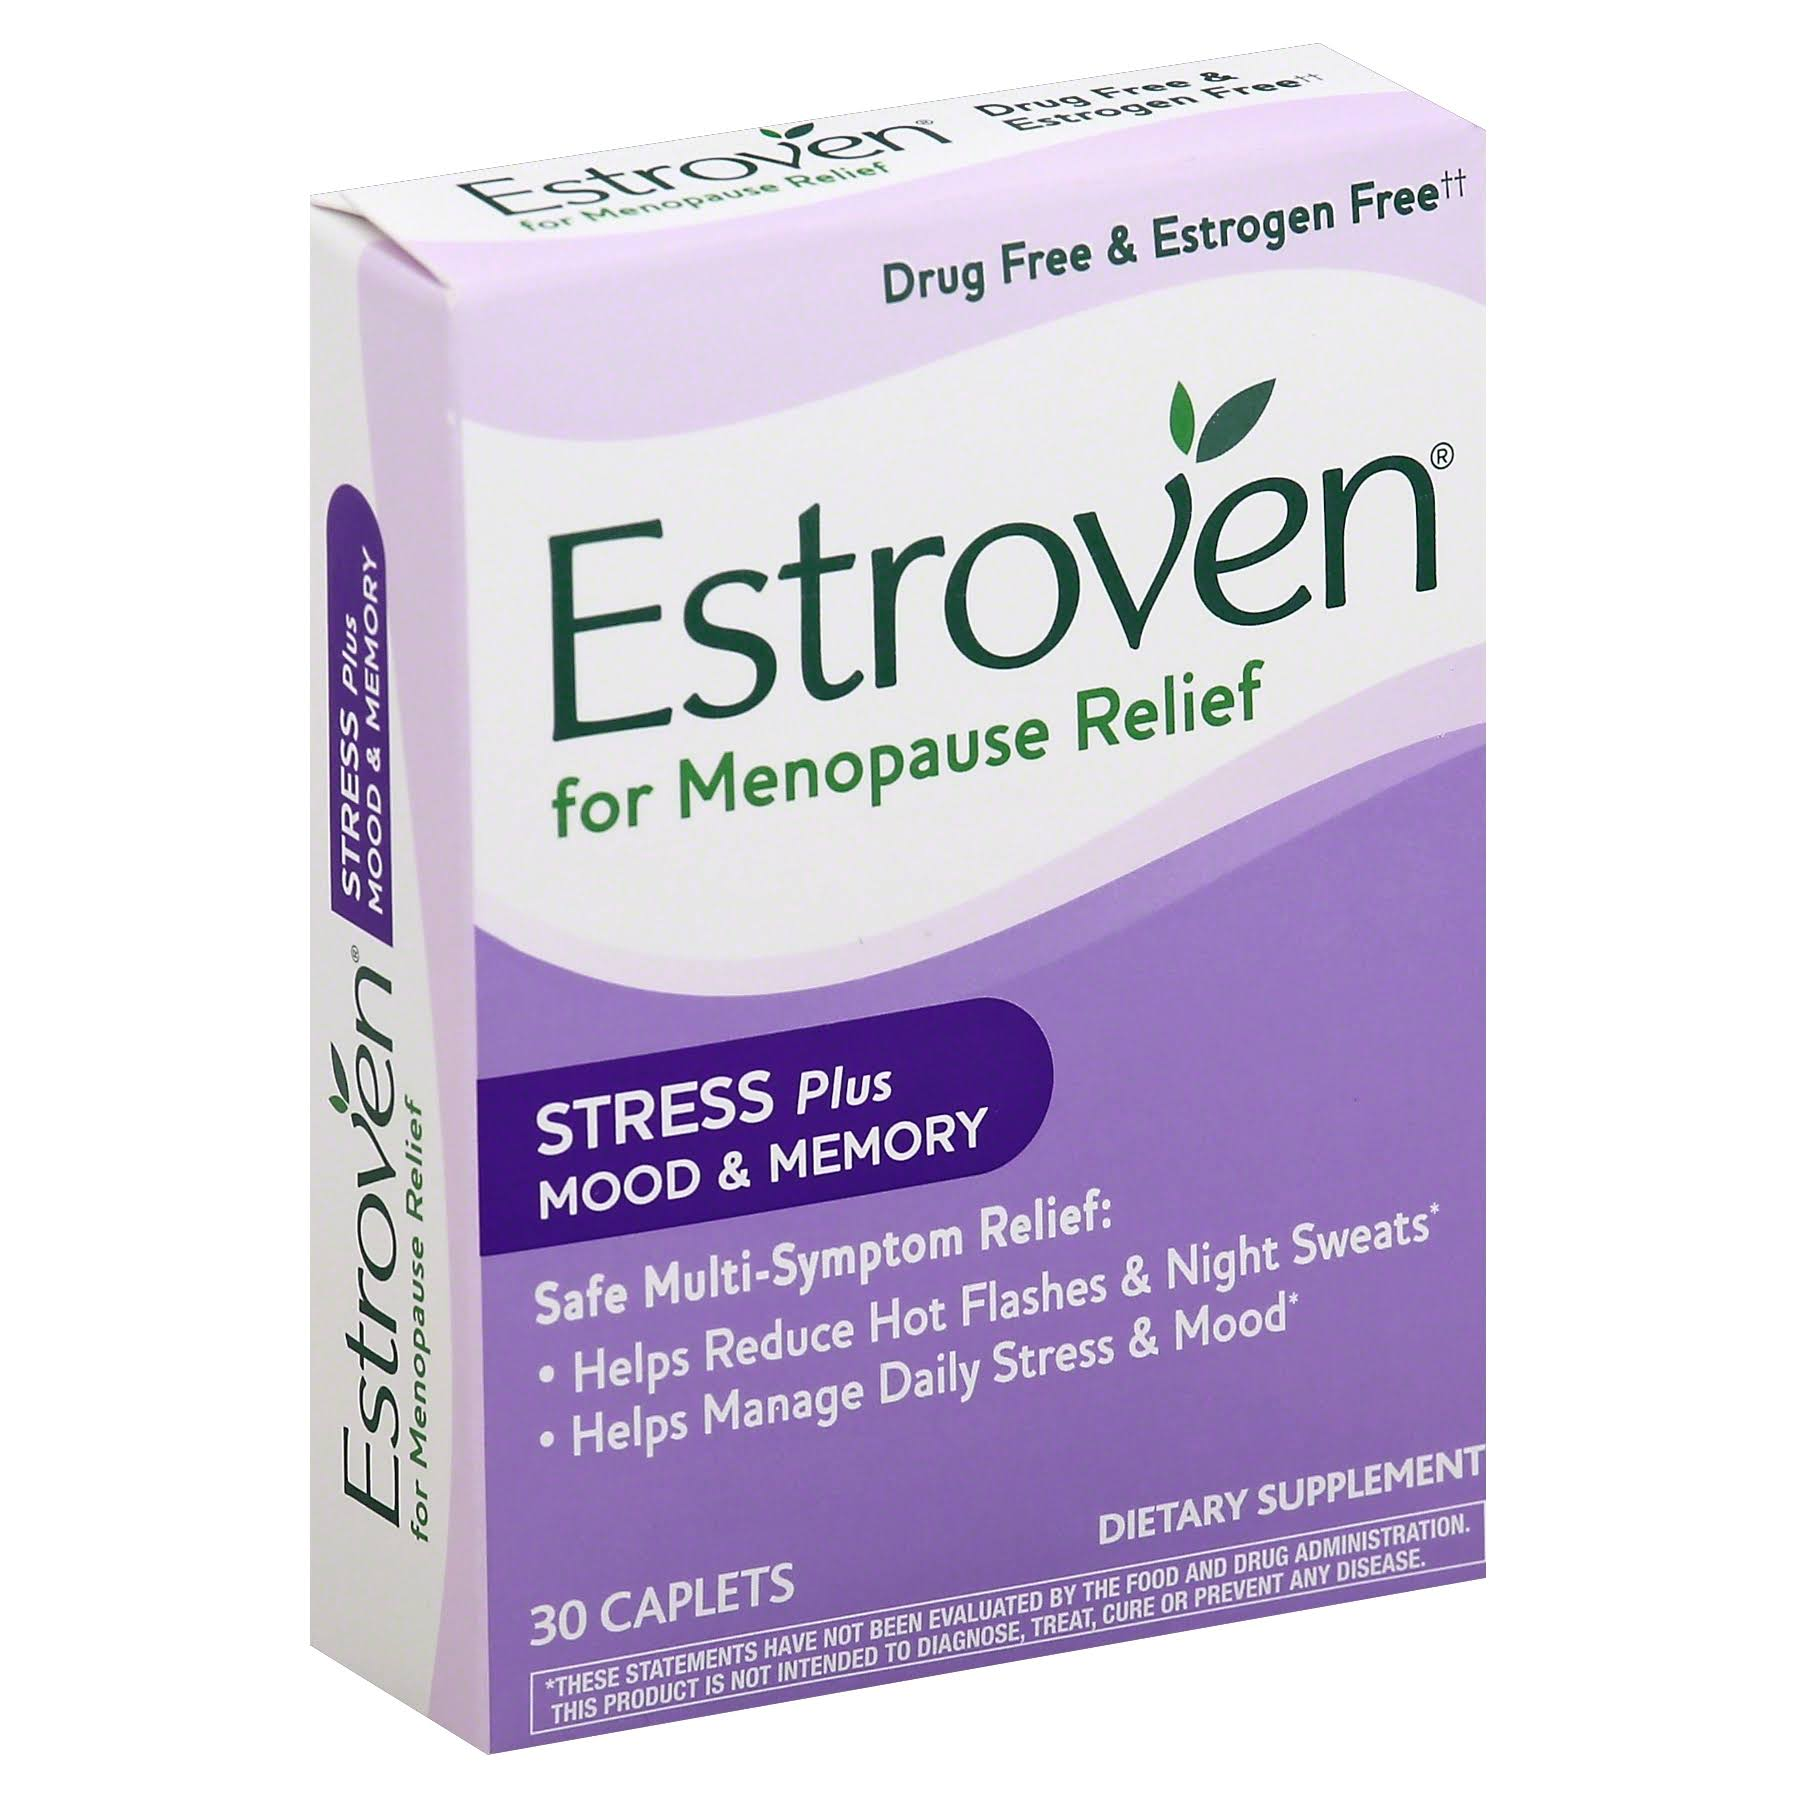 Estroven Stress Plus Menopause Relief Supplement - 30 Count